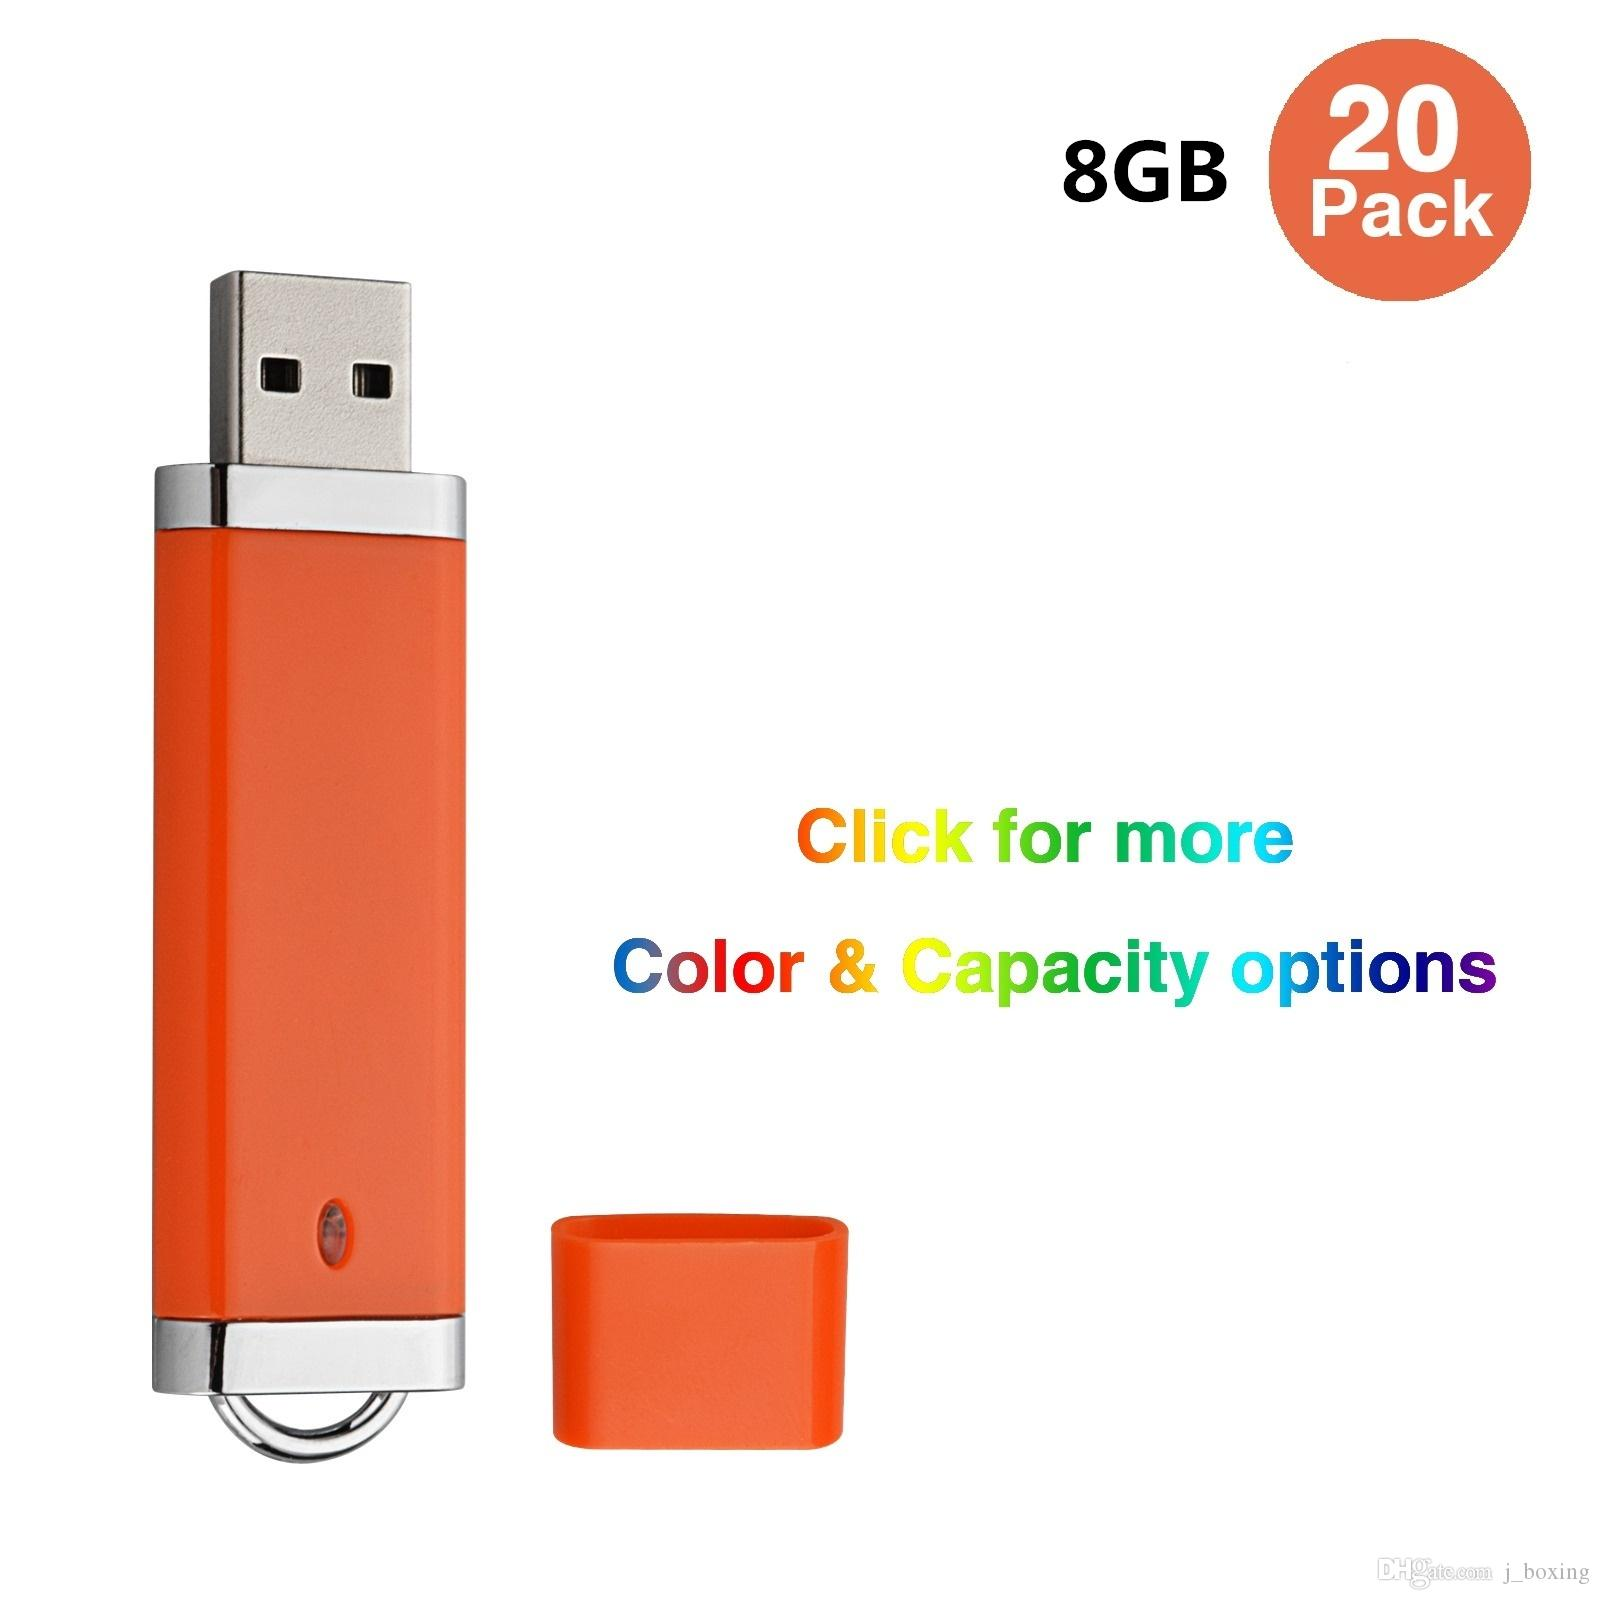 5//10pcs Lot Sale 64MB-16GB USB 2.0 Flash Memory Stick Pen Drive Data Storage